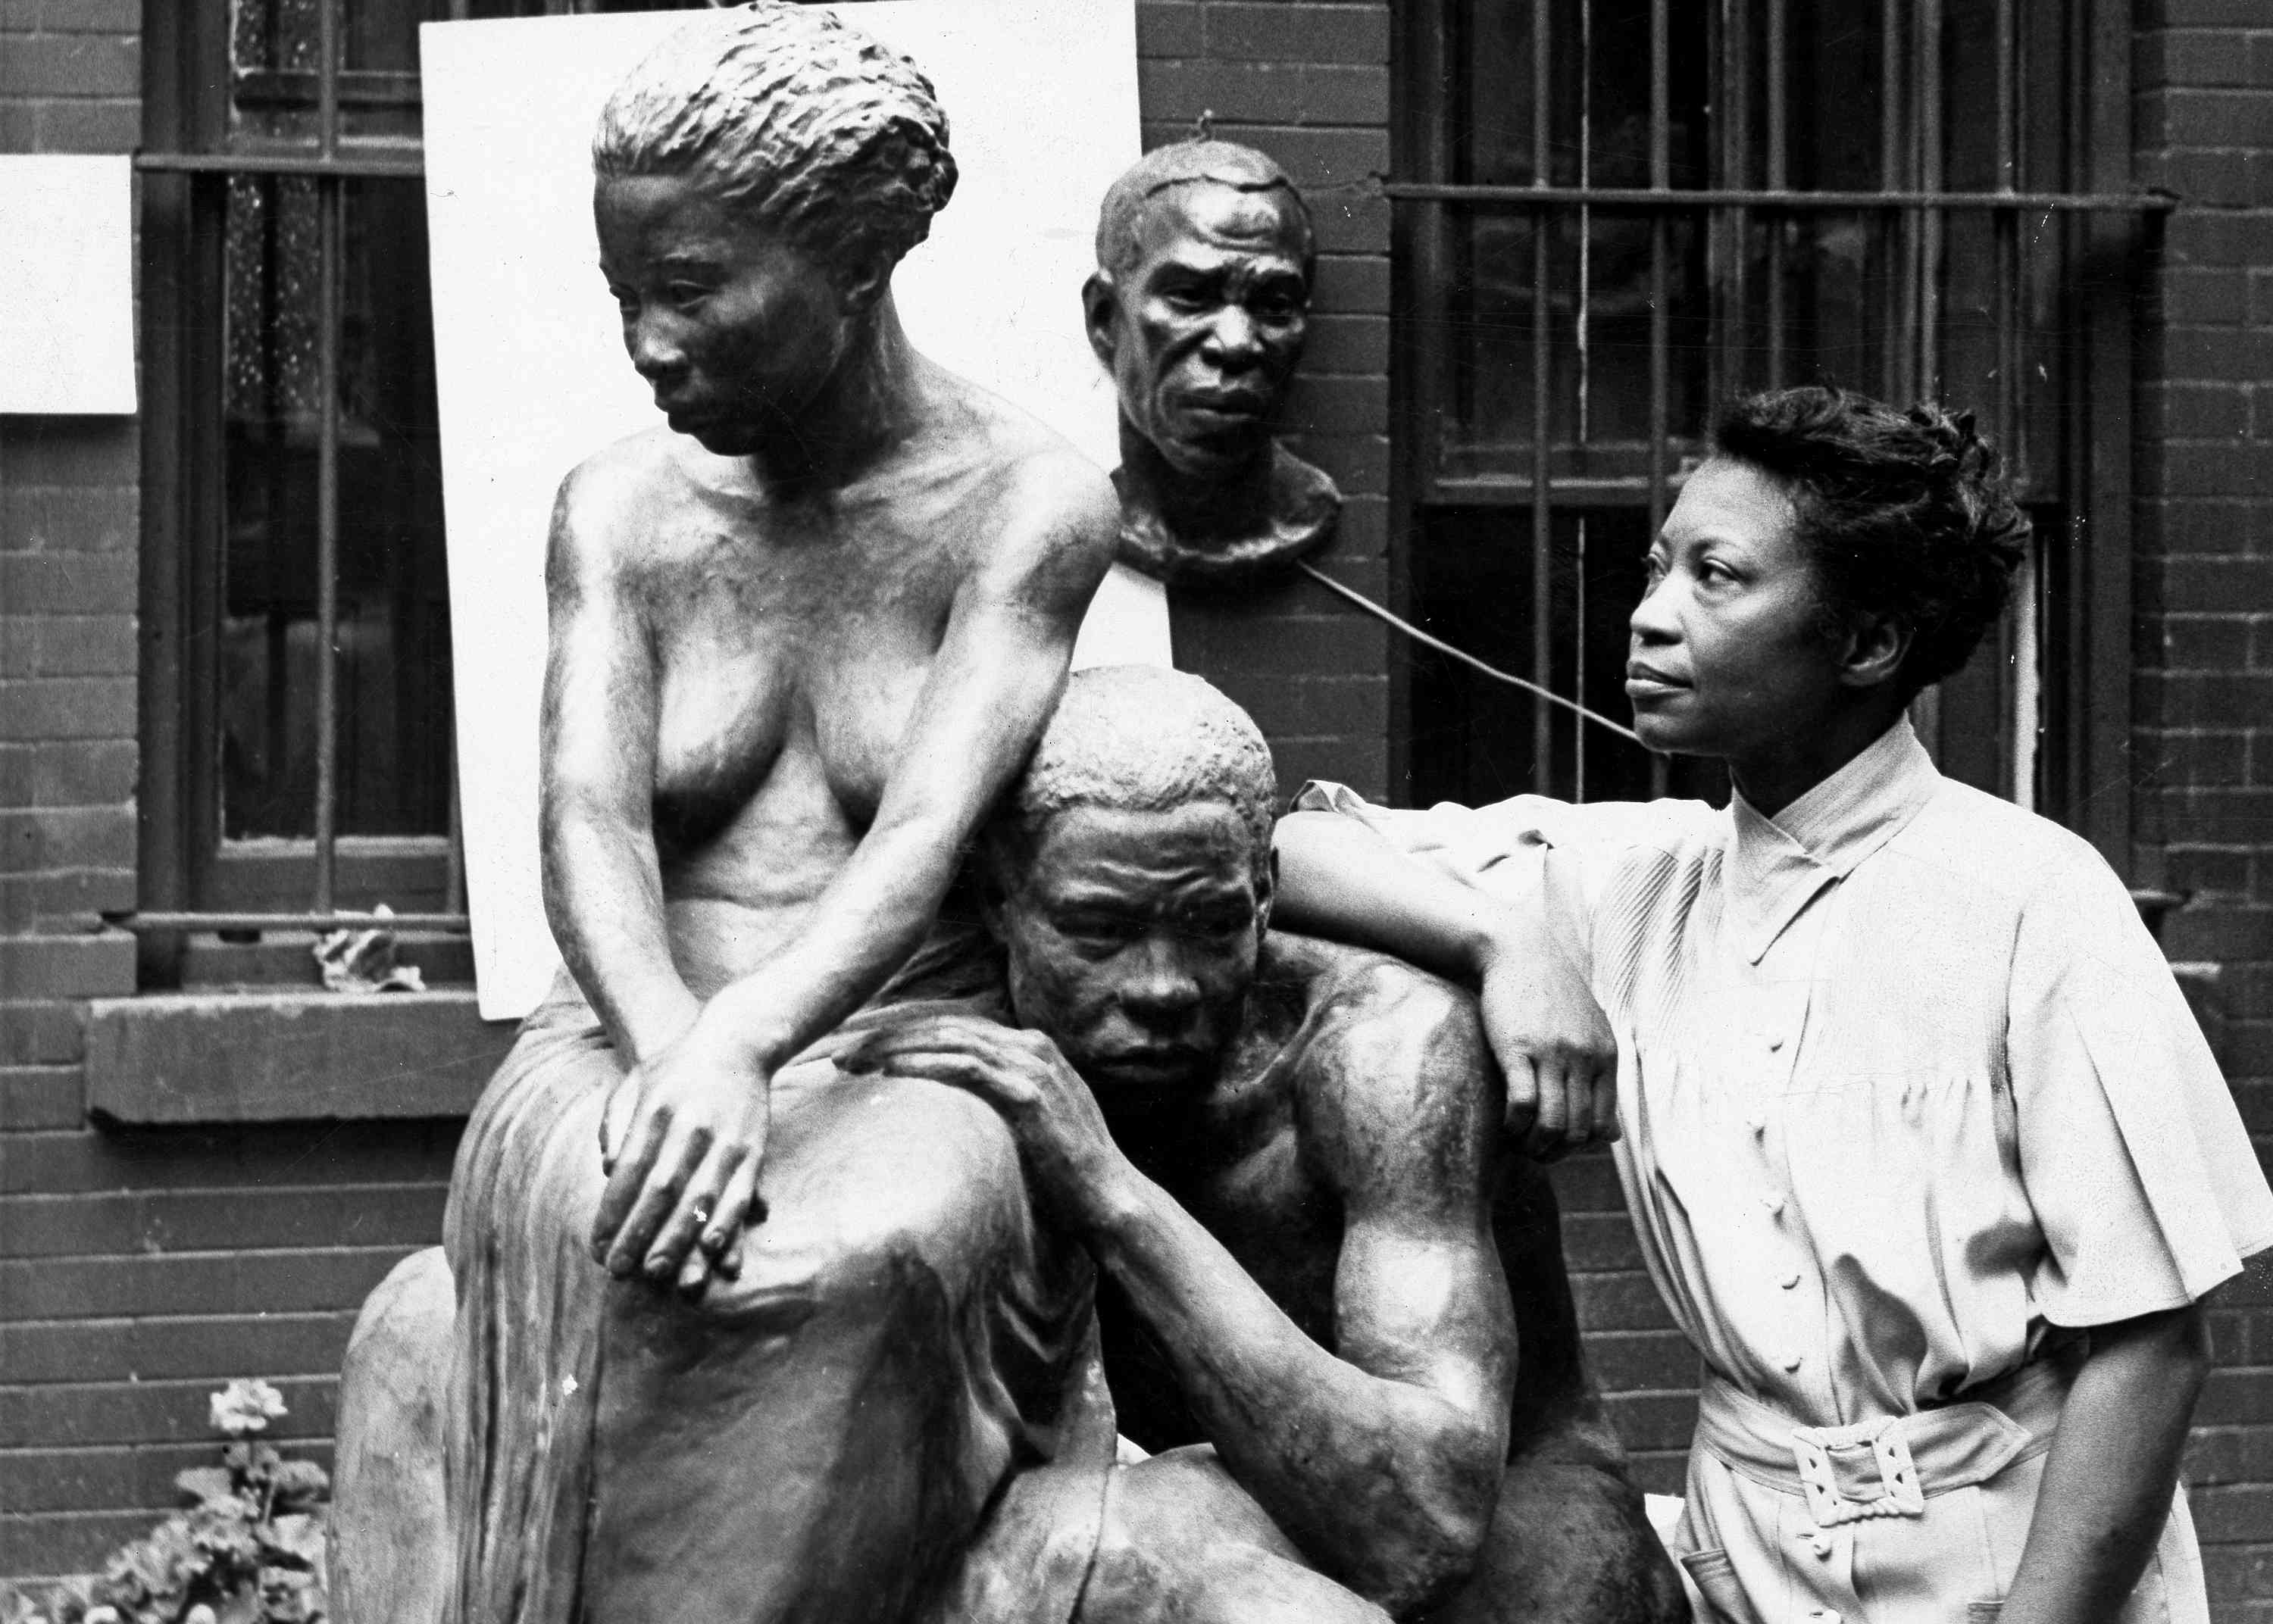 Augusta Savage poses with her sculpture Realization